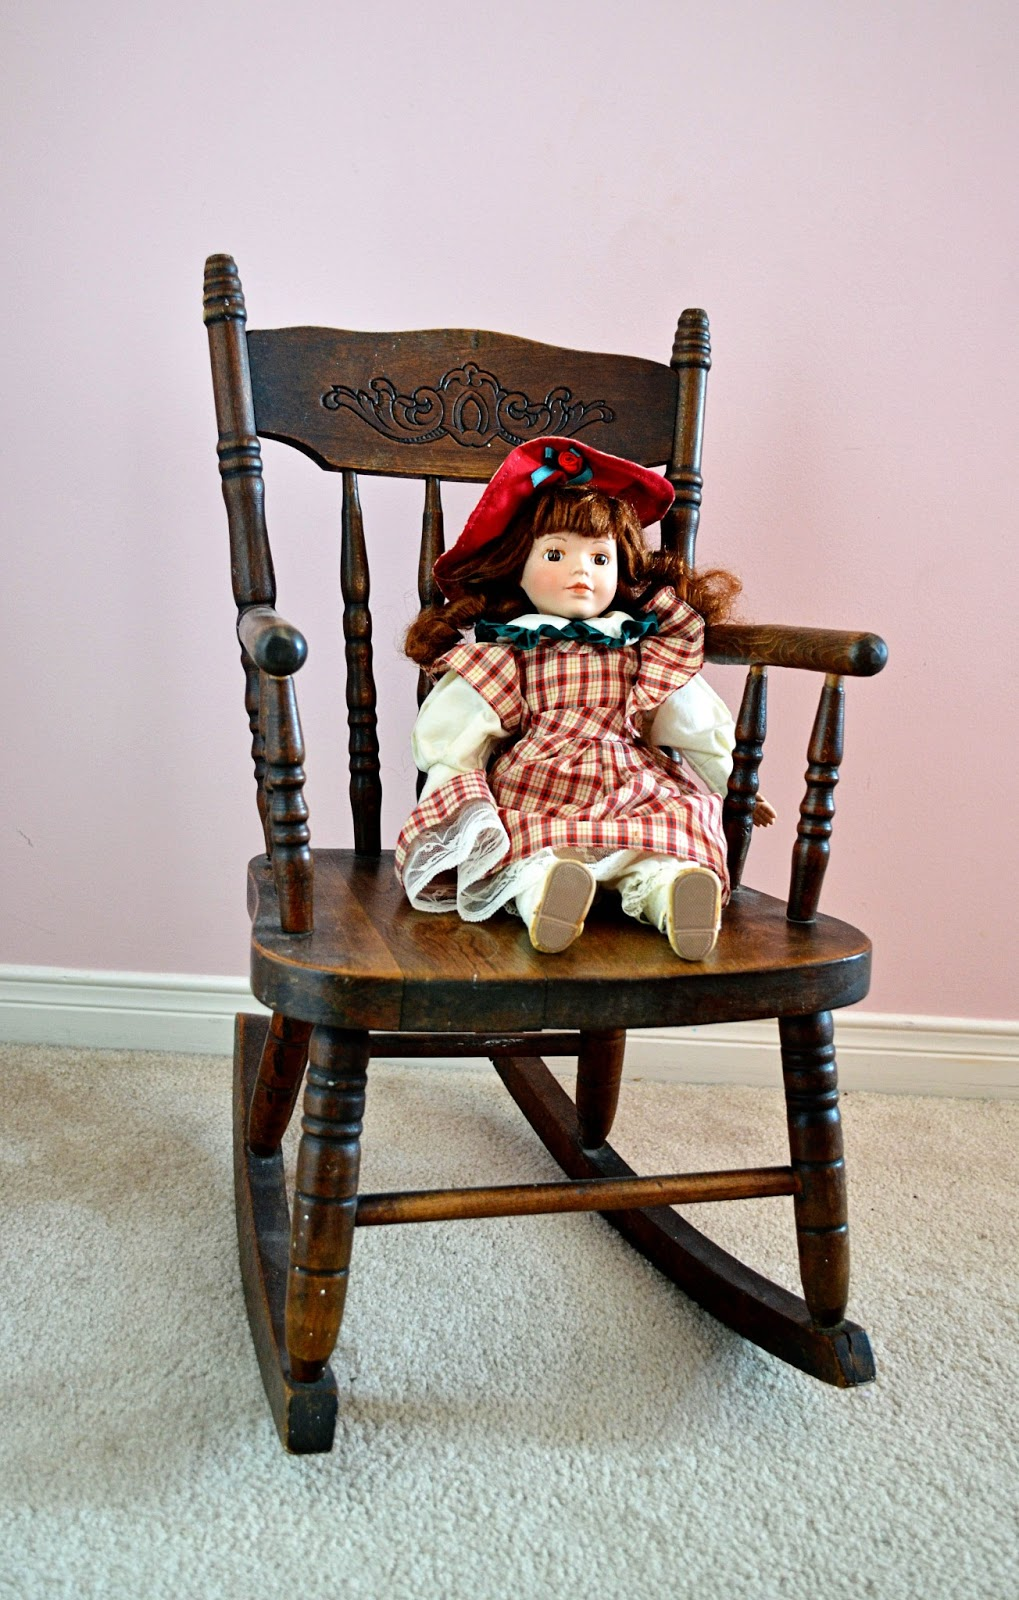 Antique Doll Chair Antique Furniture. - Shop Dolls Wooden High Chair Antique Furniture Www